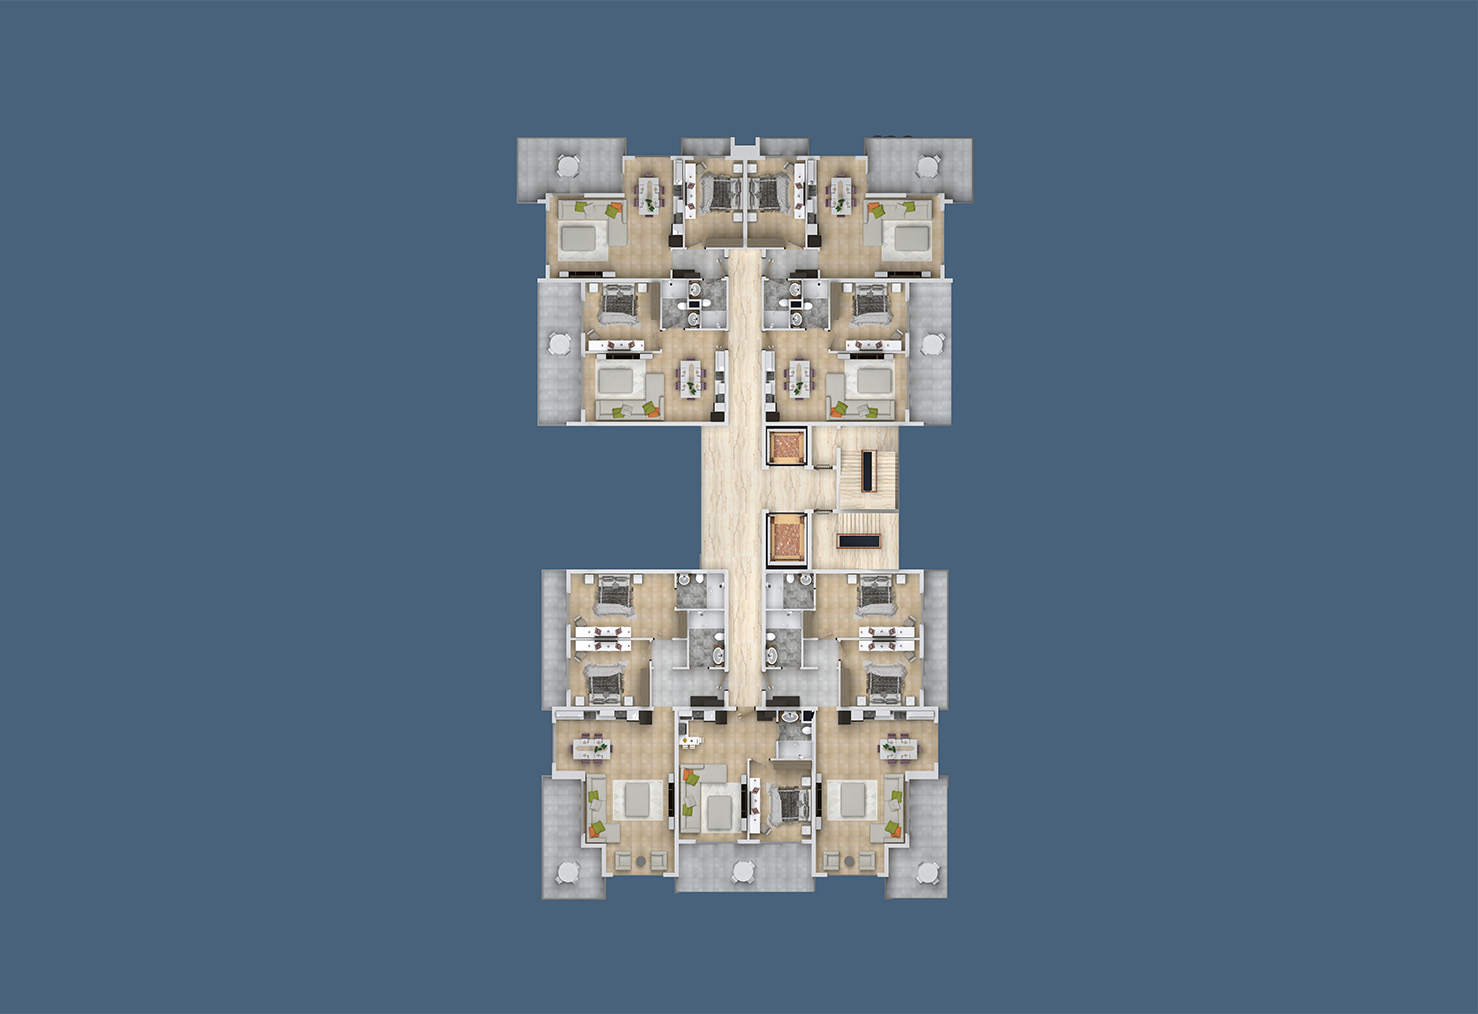 Floor plans of apartments 6 floor «A» Yekta Kingdom Trade Center